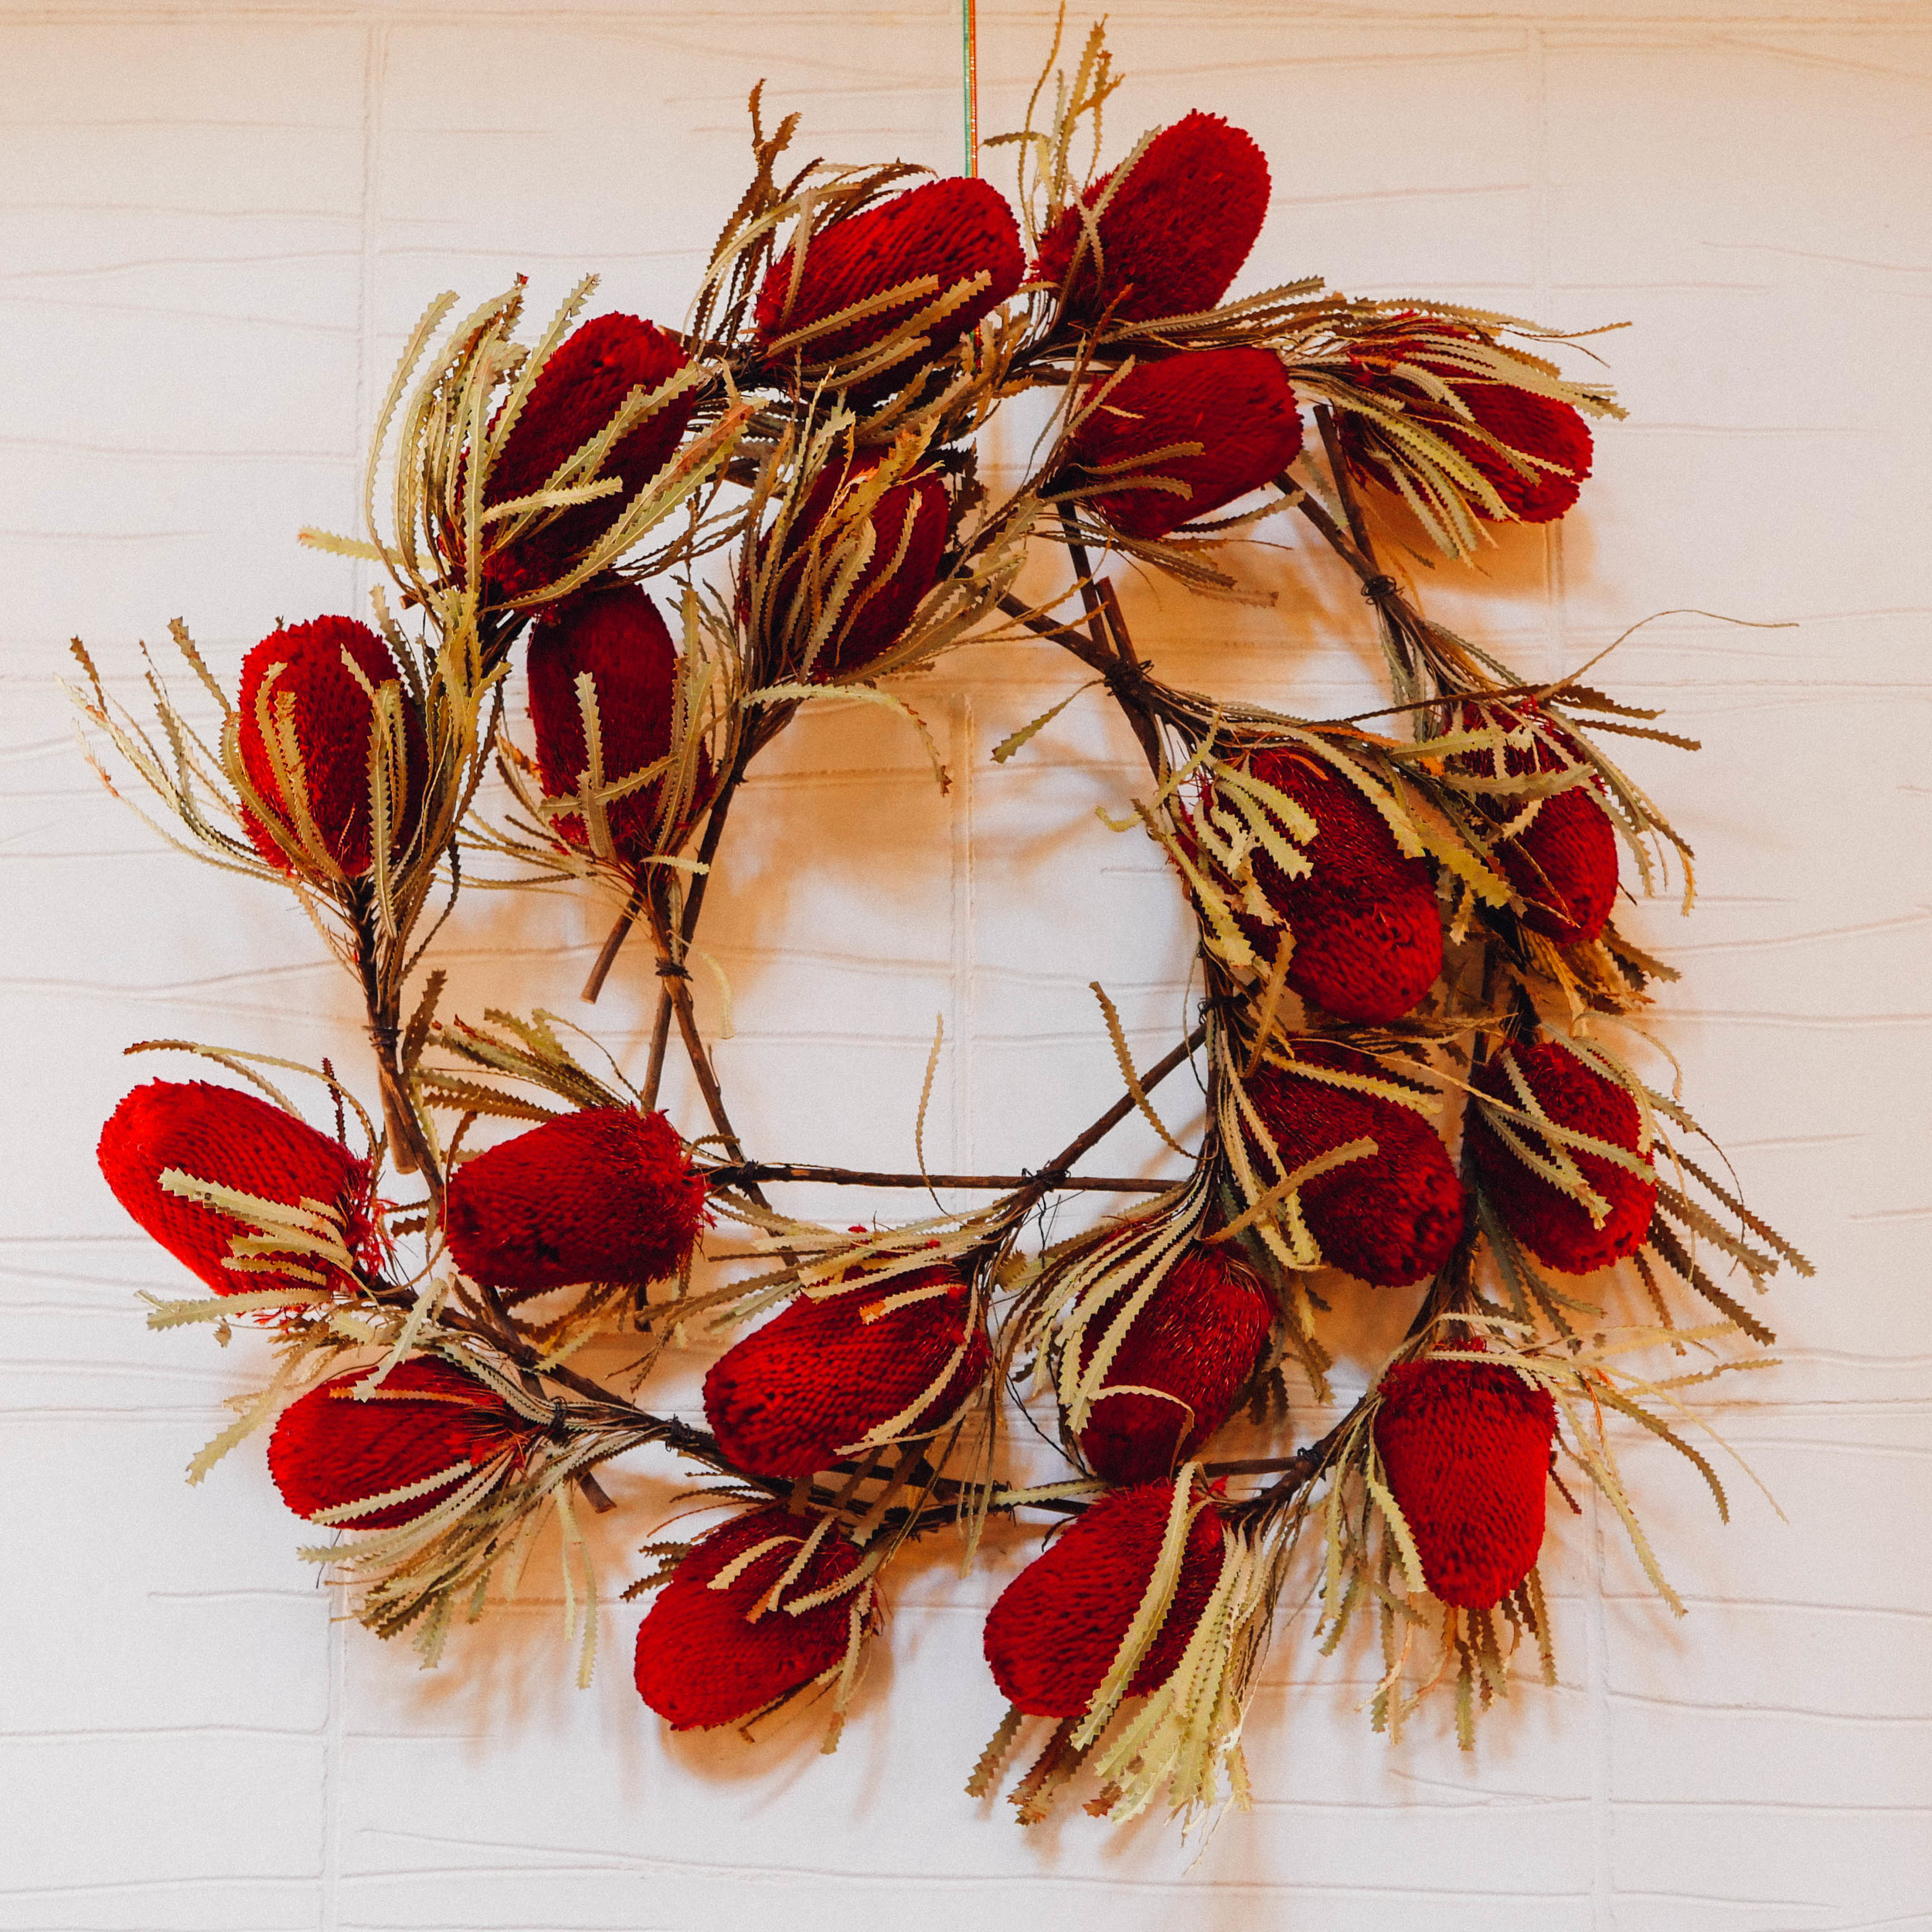 A Christmas wreath crafted from proteas in the home decorated for Australia.